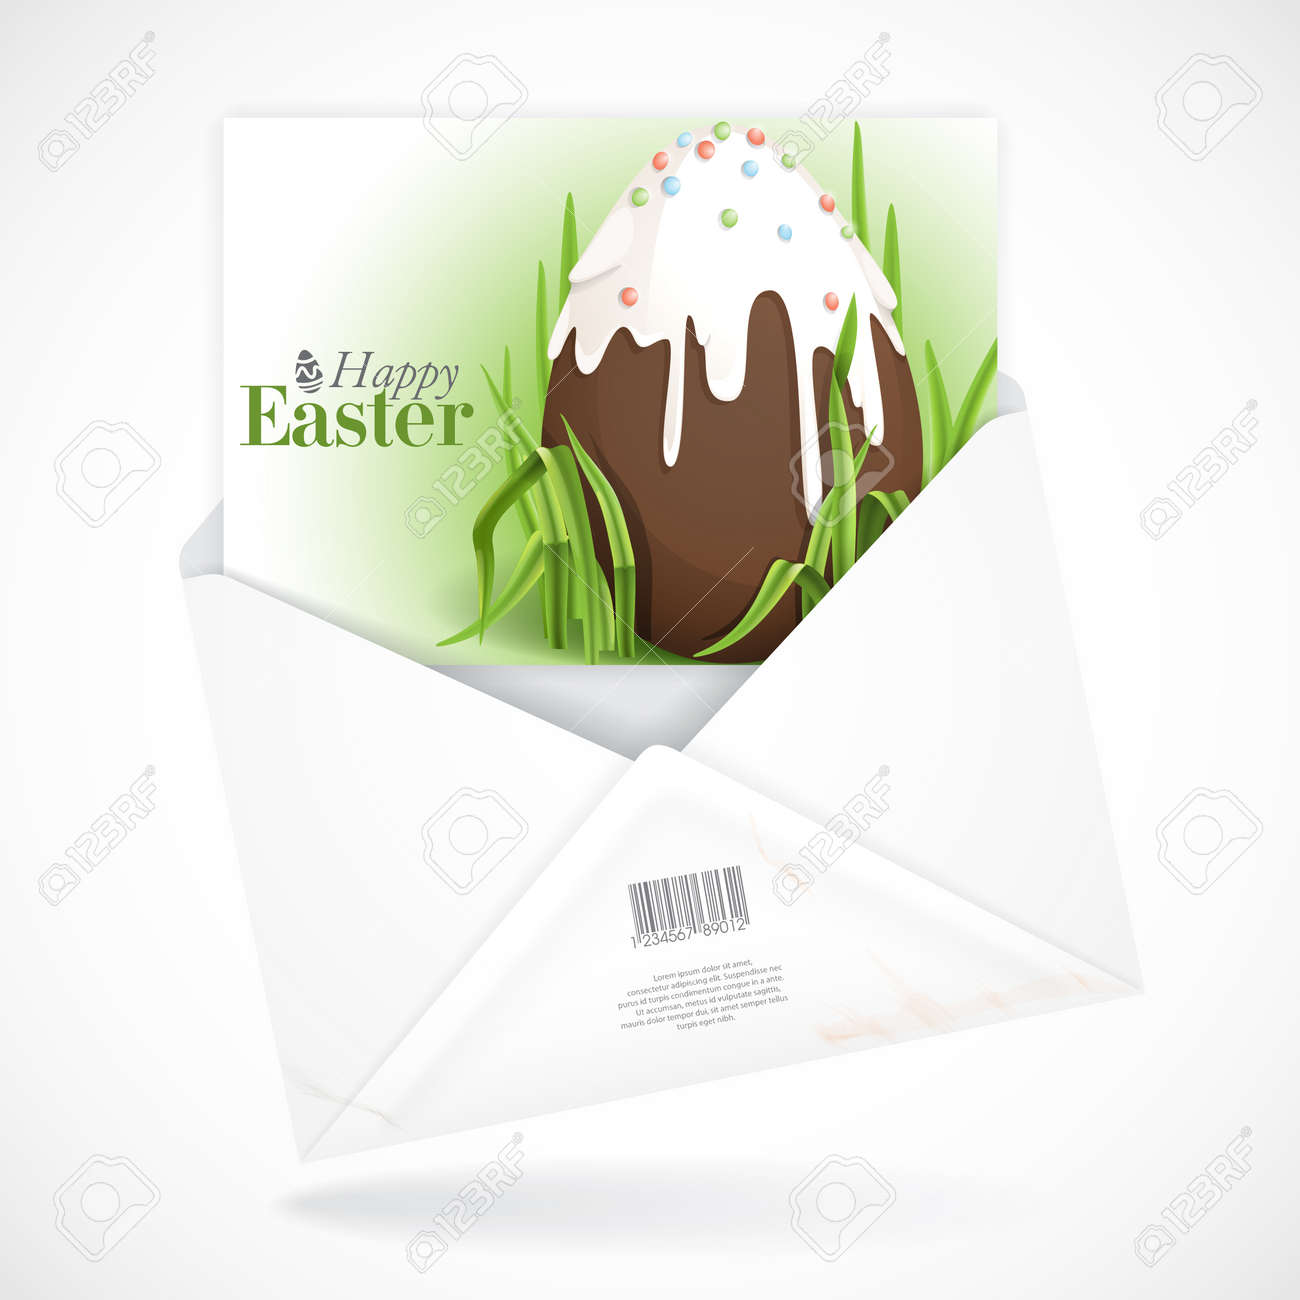 Postal Envelopes With Greeting Card. Chocolate Easter Egg. Vector ...